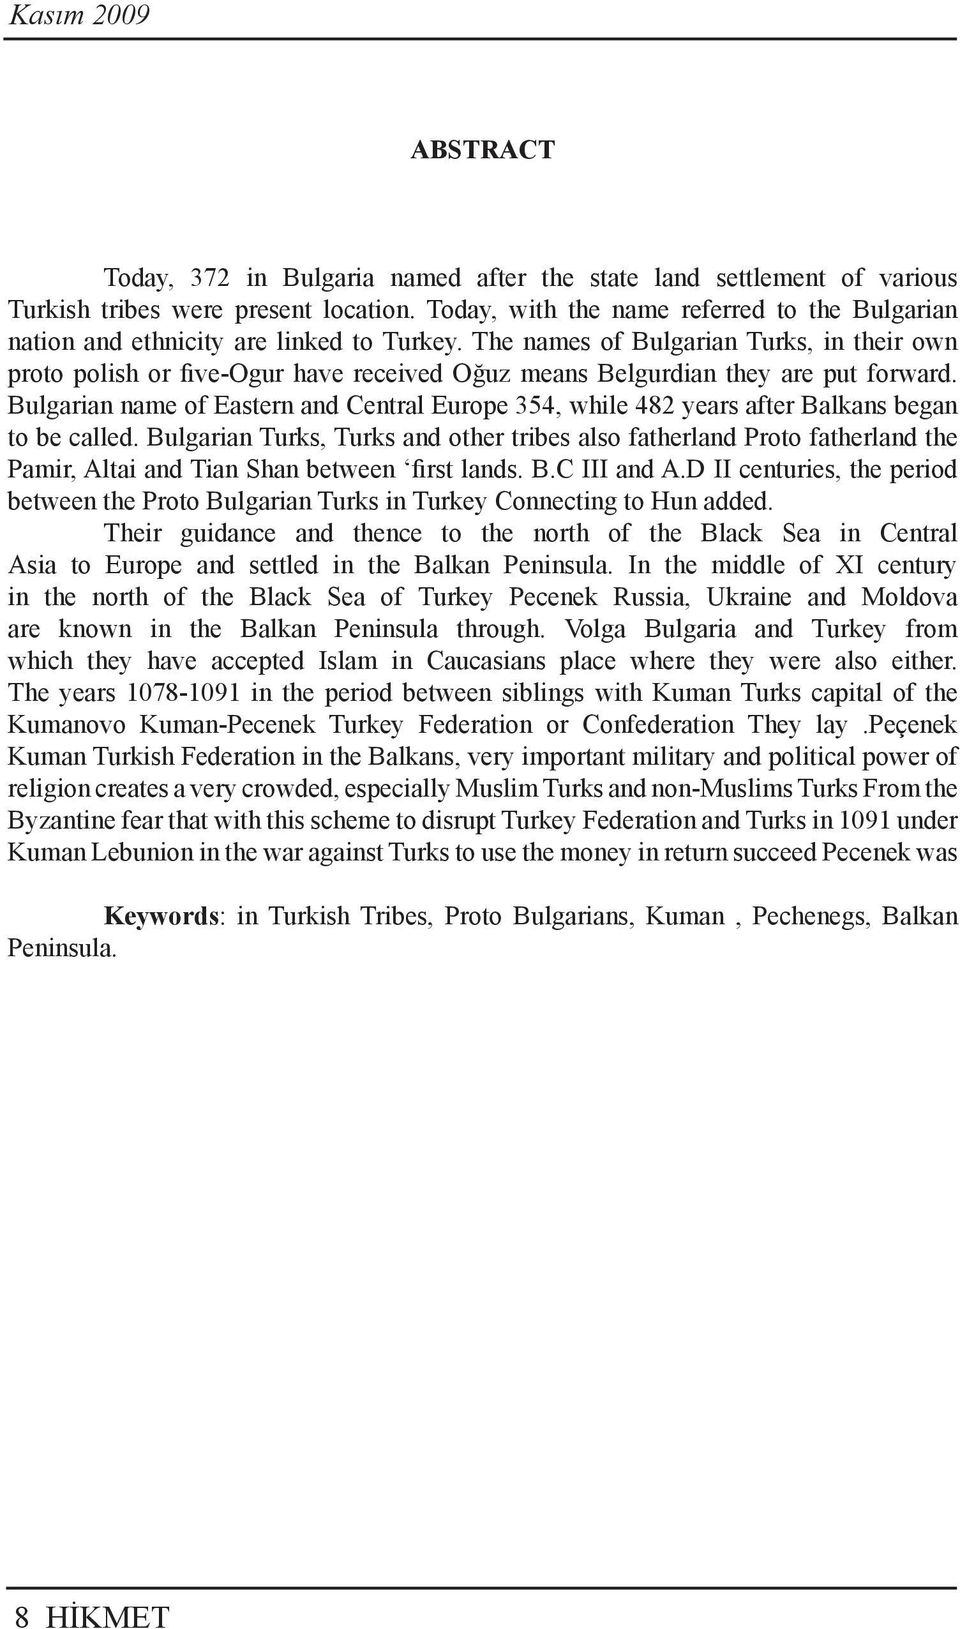 The names of Bulgarian Turks, in their own proto polish or five-ogur have received Oğuz means Belgurdian they are put forward.